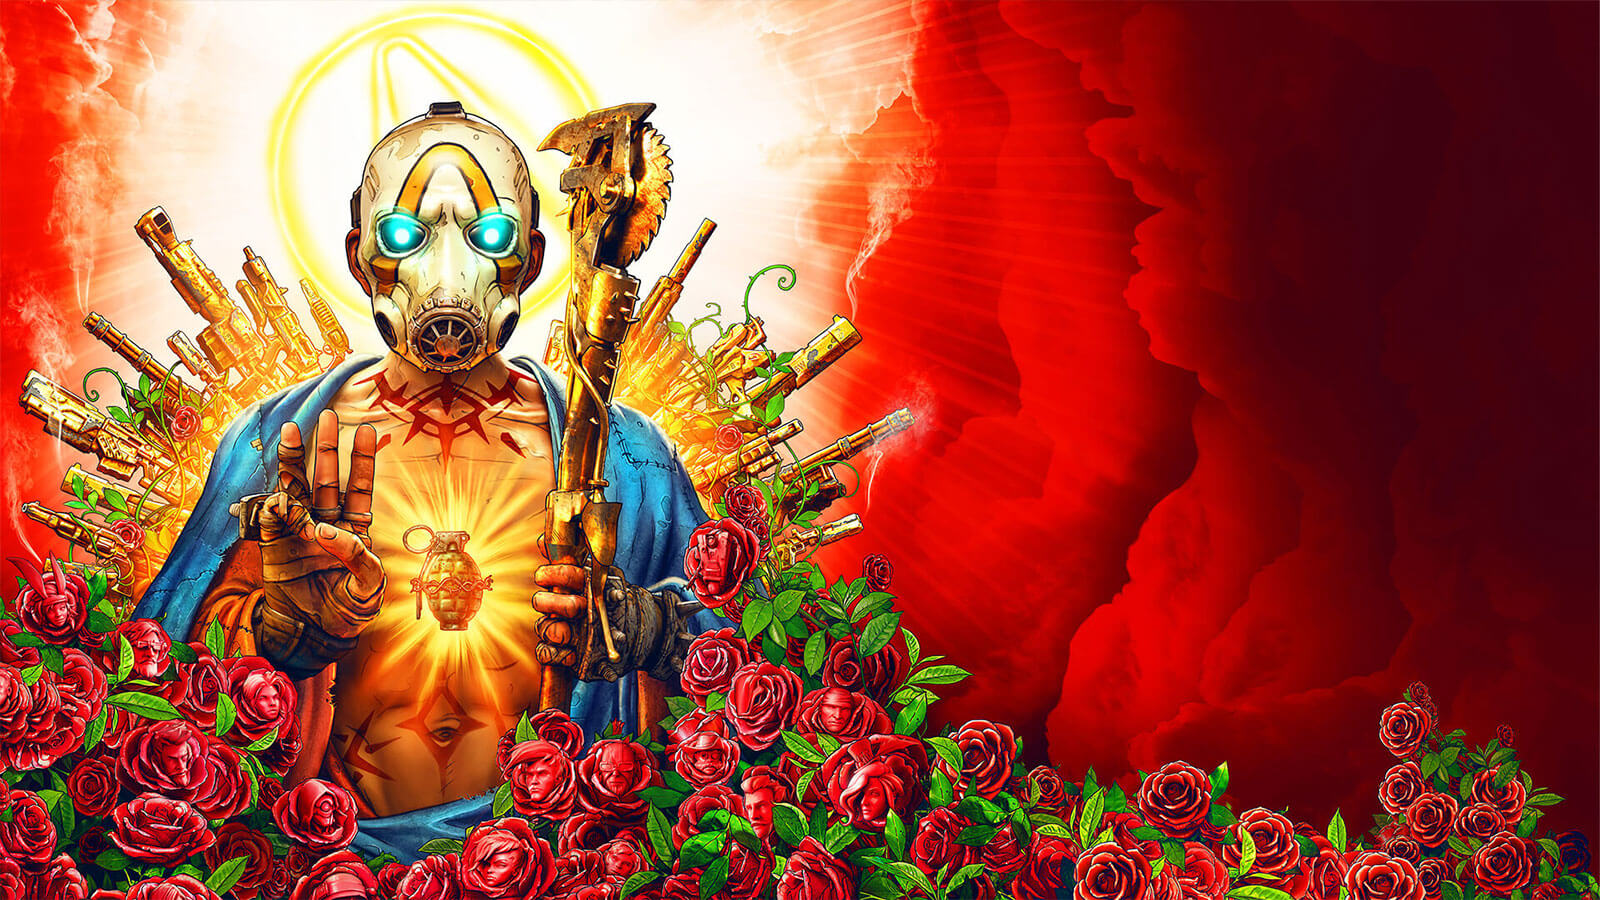 A man with glowing blue eyes and a hand grenade tattoo is surrounded by roses and guns in the style of a religious icon.